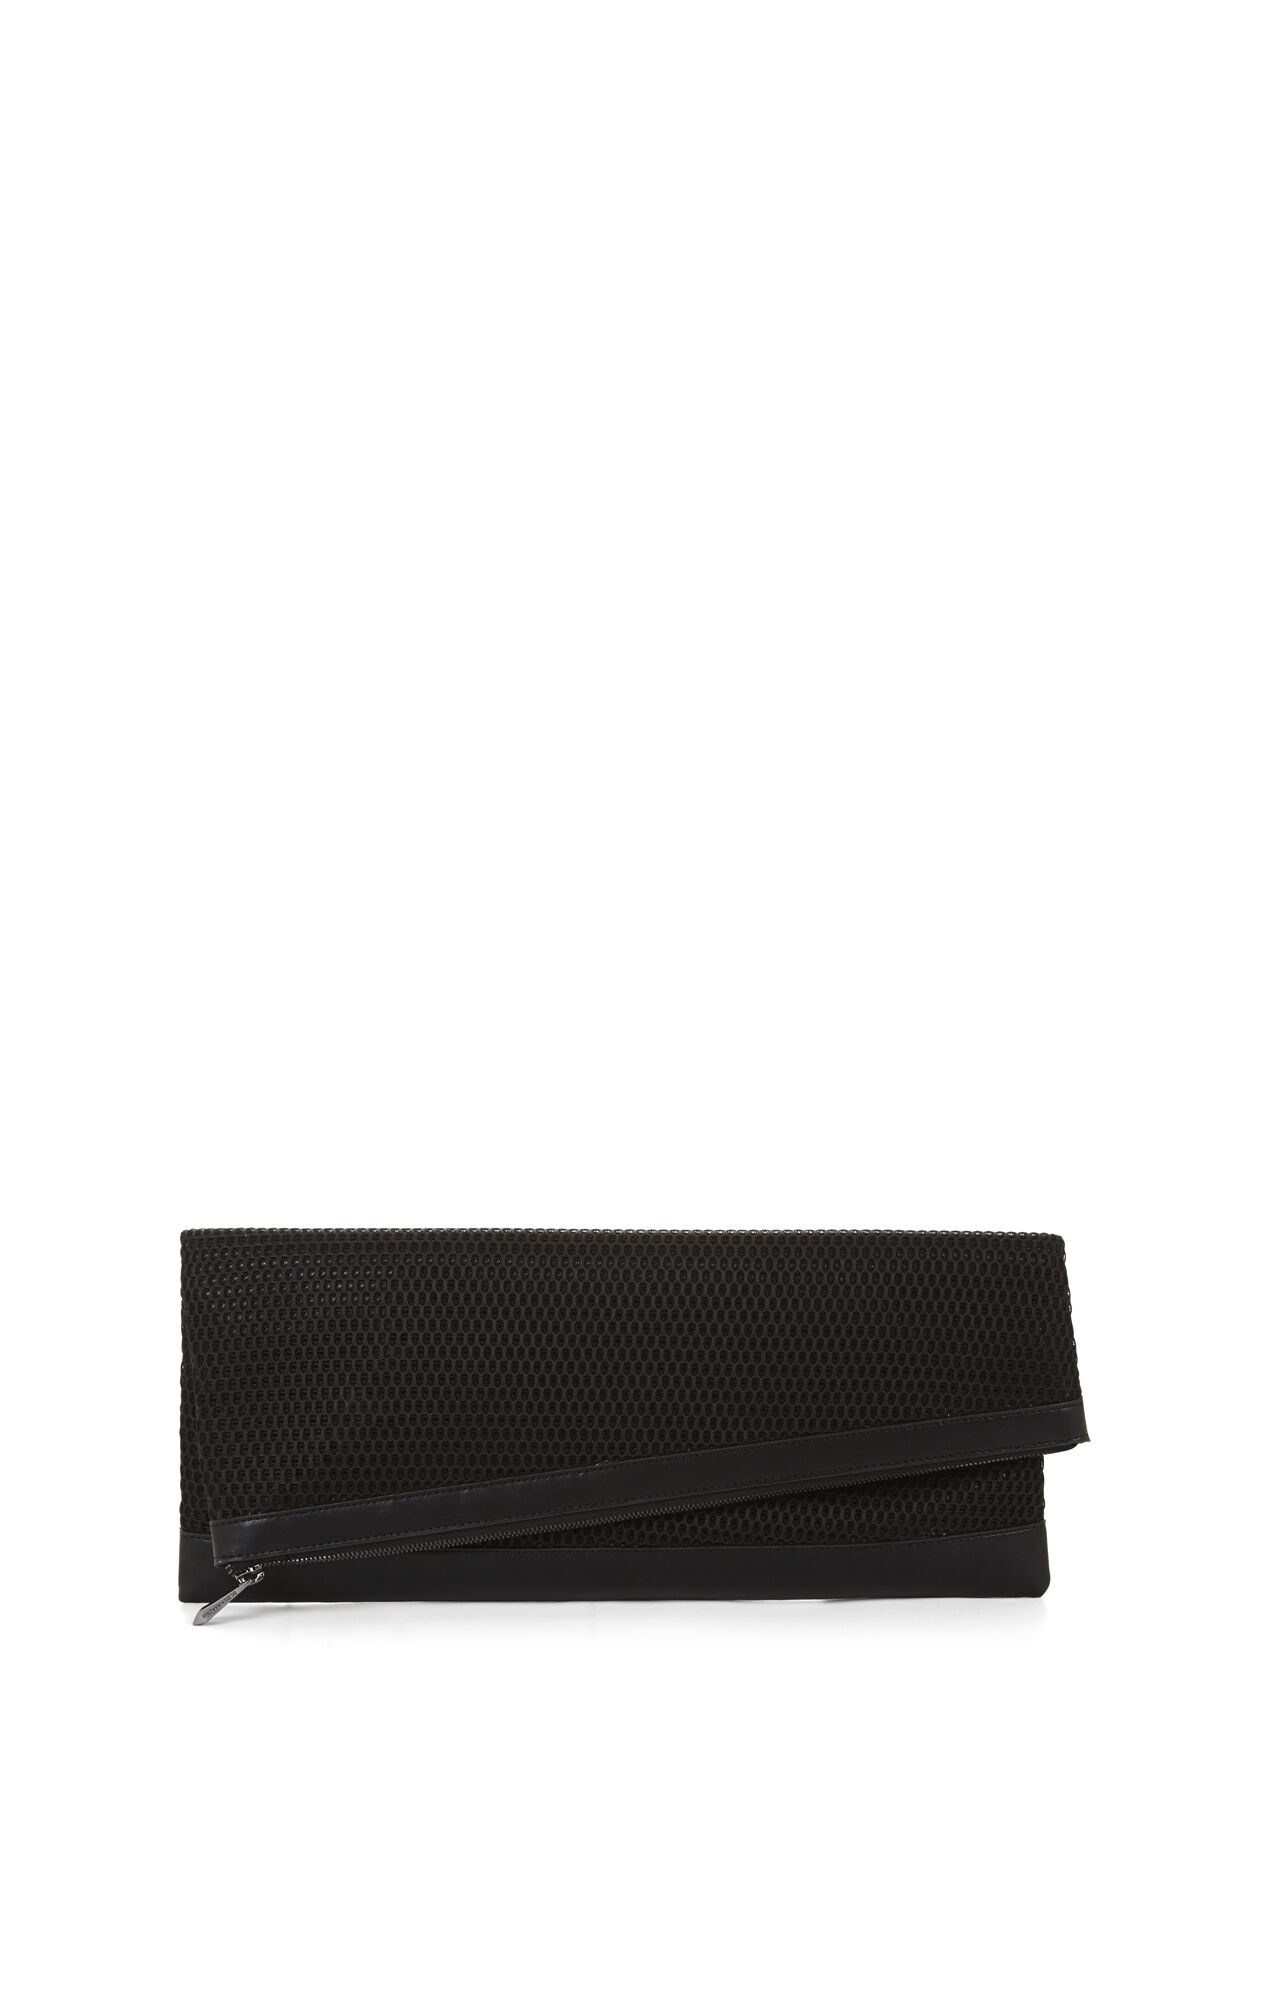 Riely Mesh Foldover Clutch